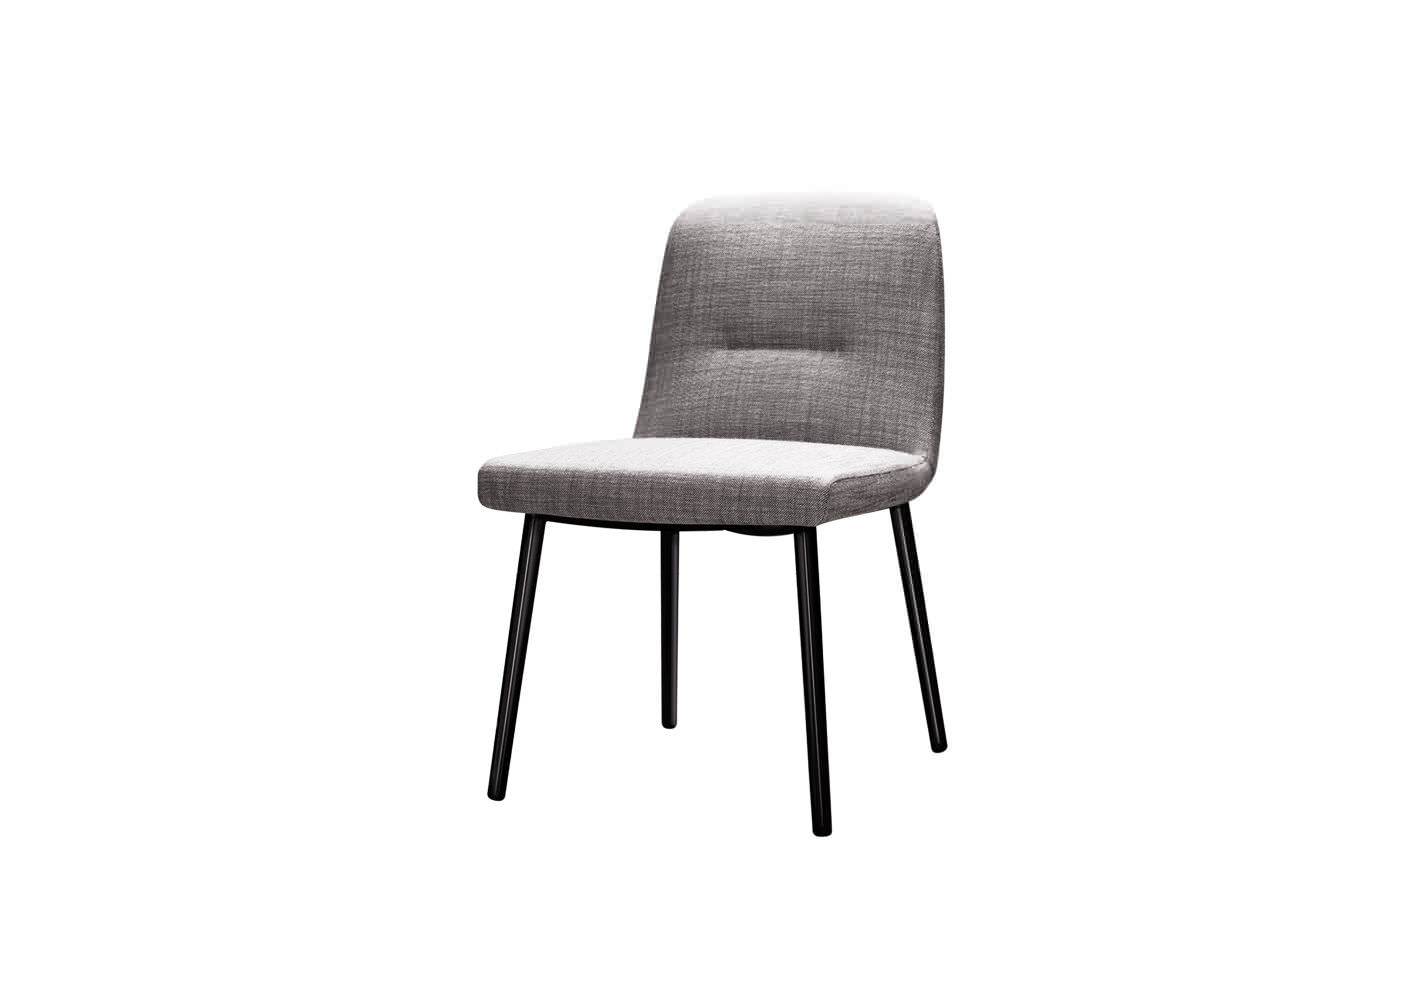 Etonnant ... Contemporary Chair / Upholstered / Ergonomic / Fabric